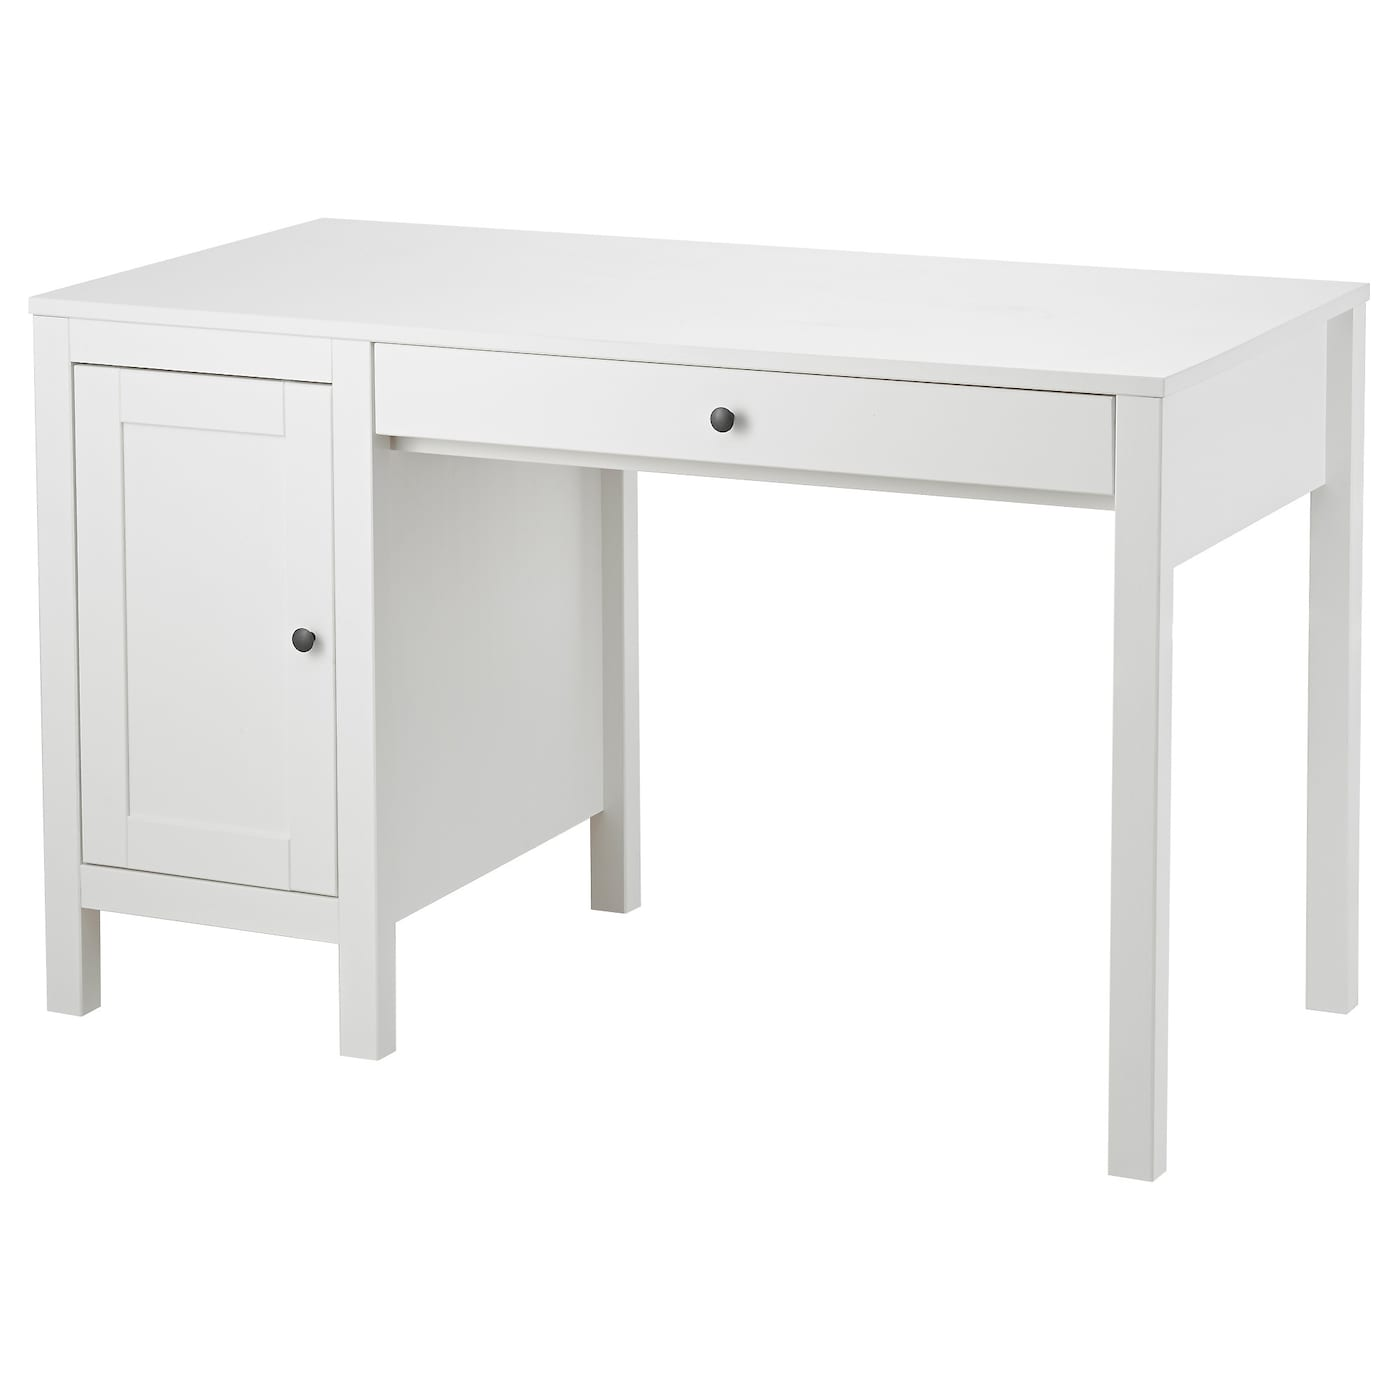 hemnes desk white stained 120x55 cm ikea. Black Bedroom Furniture Sets. Home Design Ideas